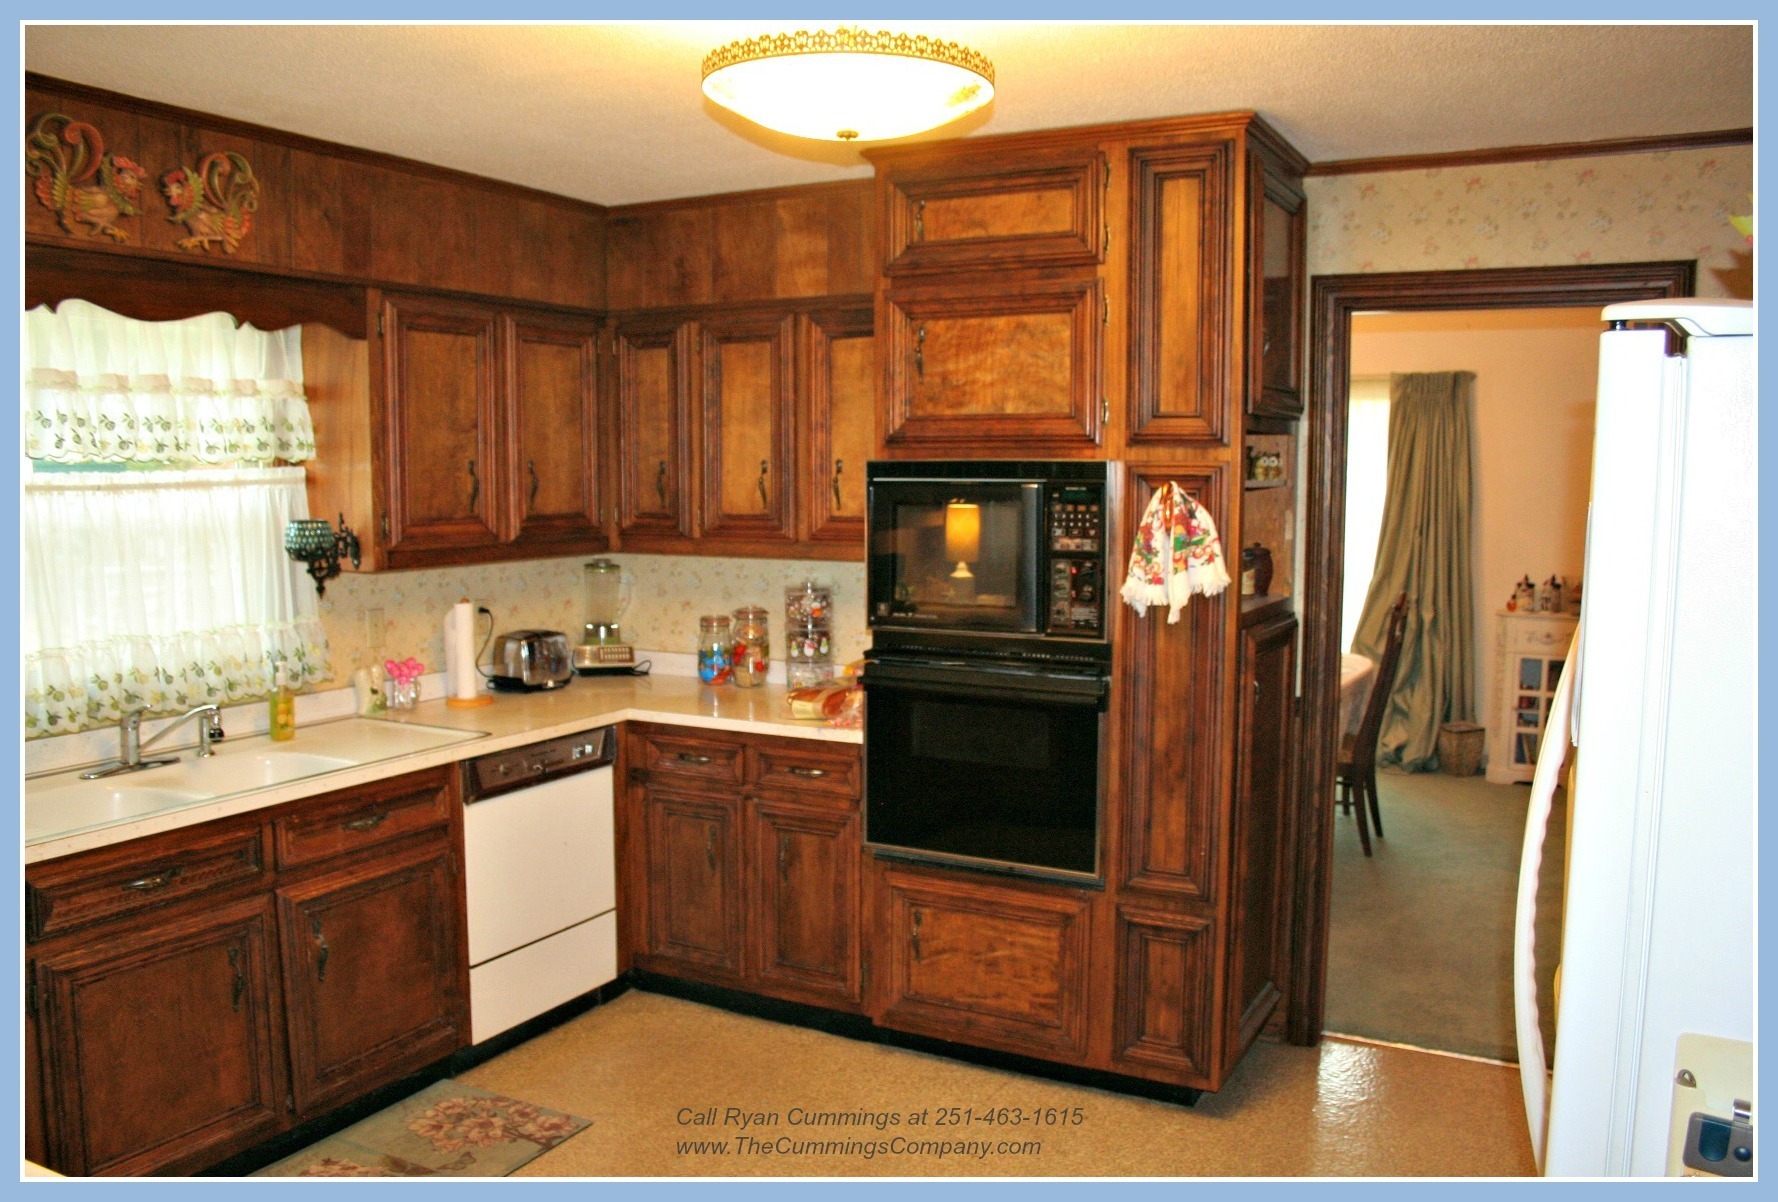 Mobile AL homes for sale with Refrigerator